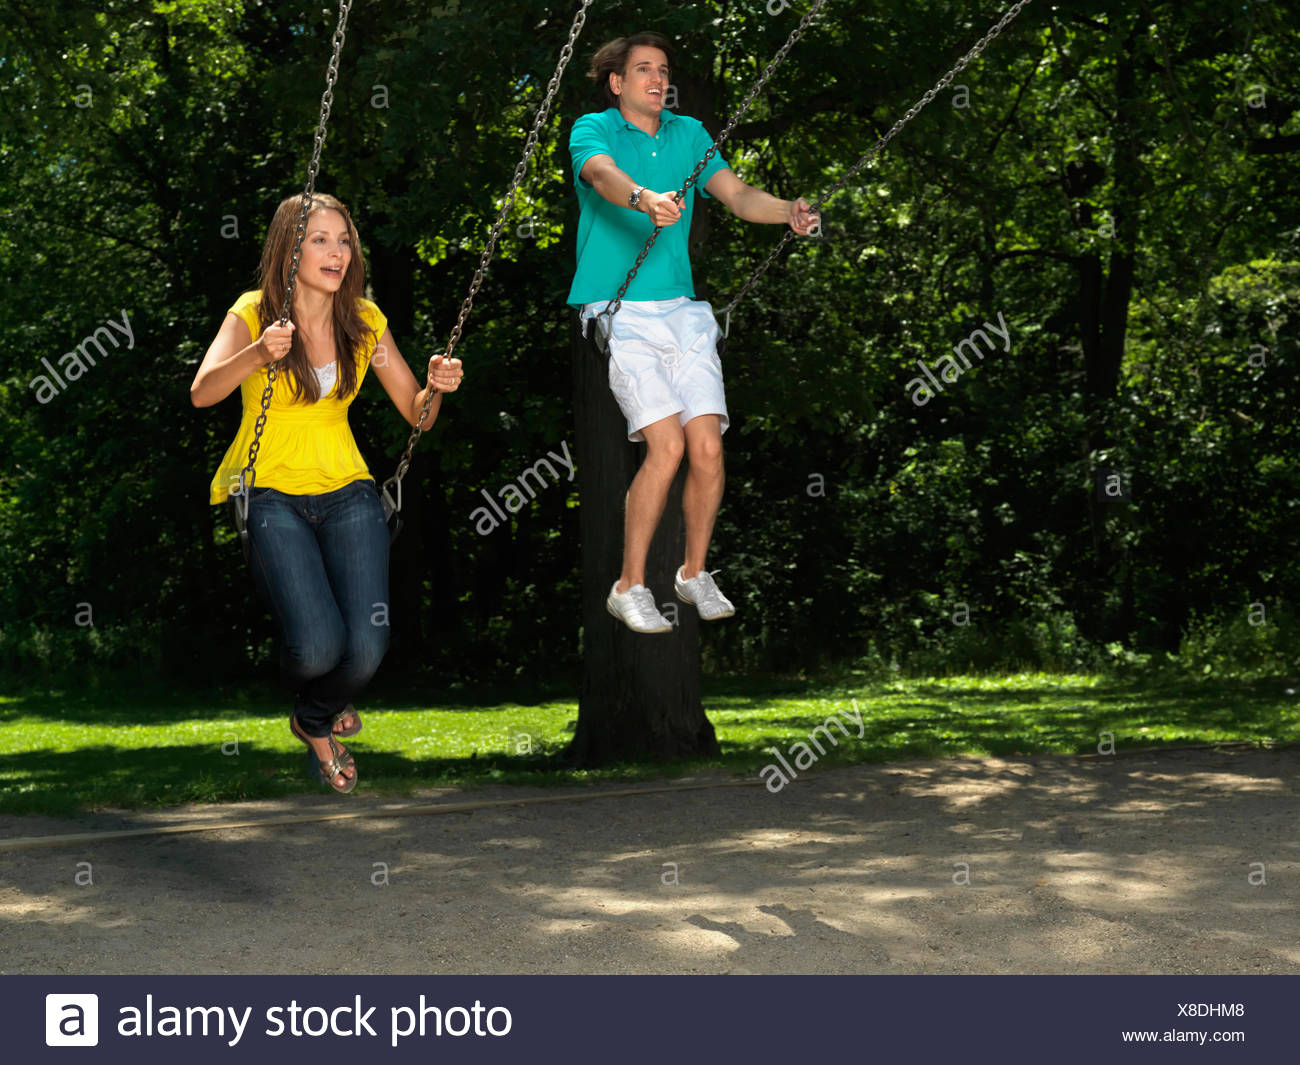 Canada couple in ont swinging